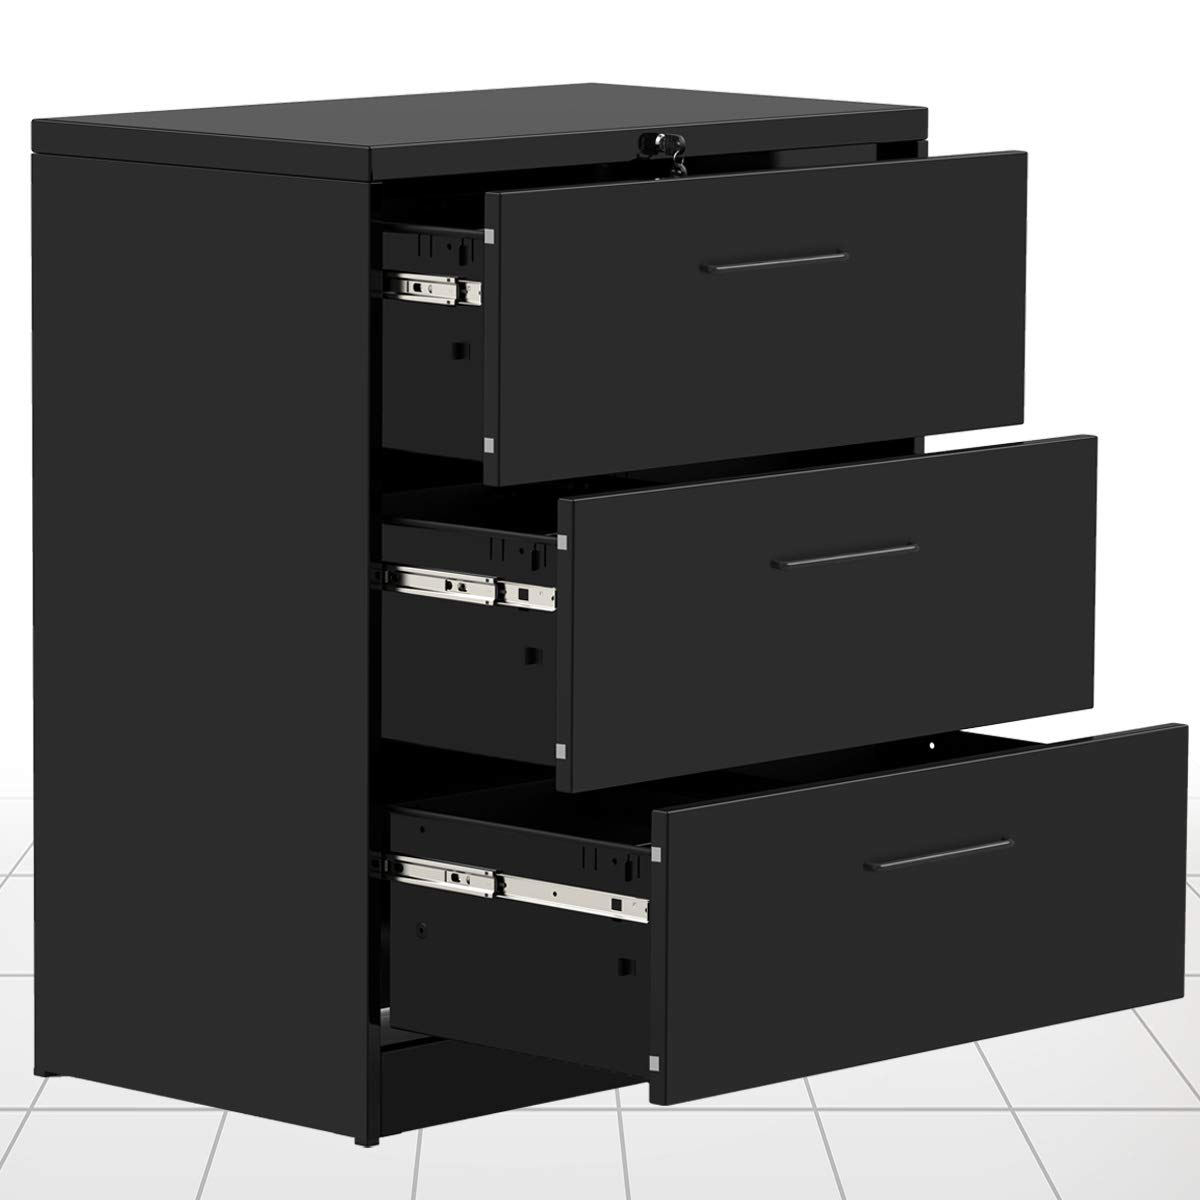 3 Drawers lateral File Cabinet 2 Drawer Locking Filing Cabinet 3 Drawers Metal Organizer Heavy Duty Hanging File Office Home by Modern Luxe